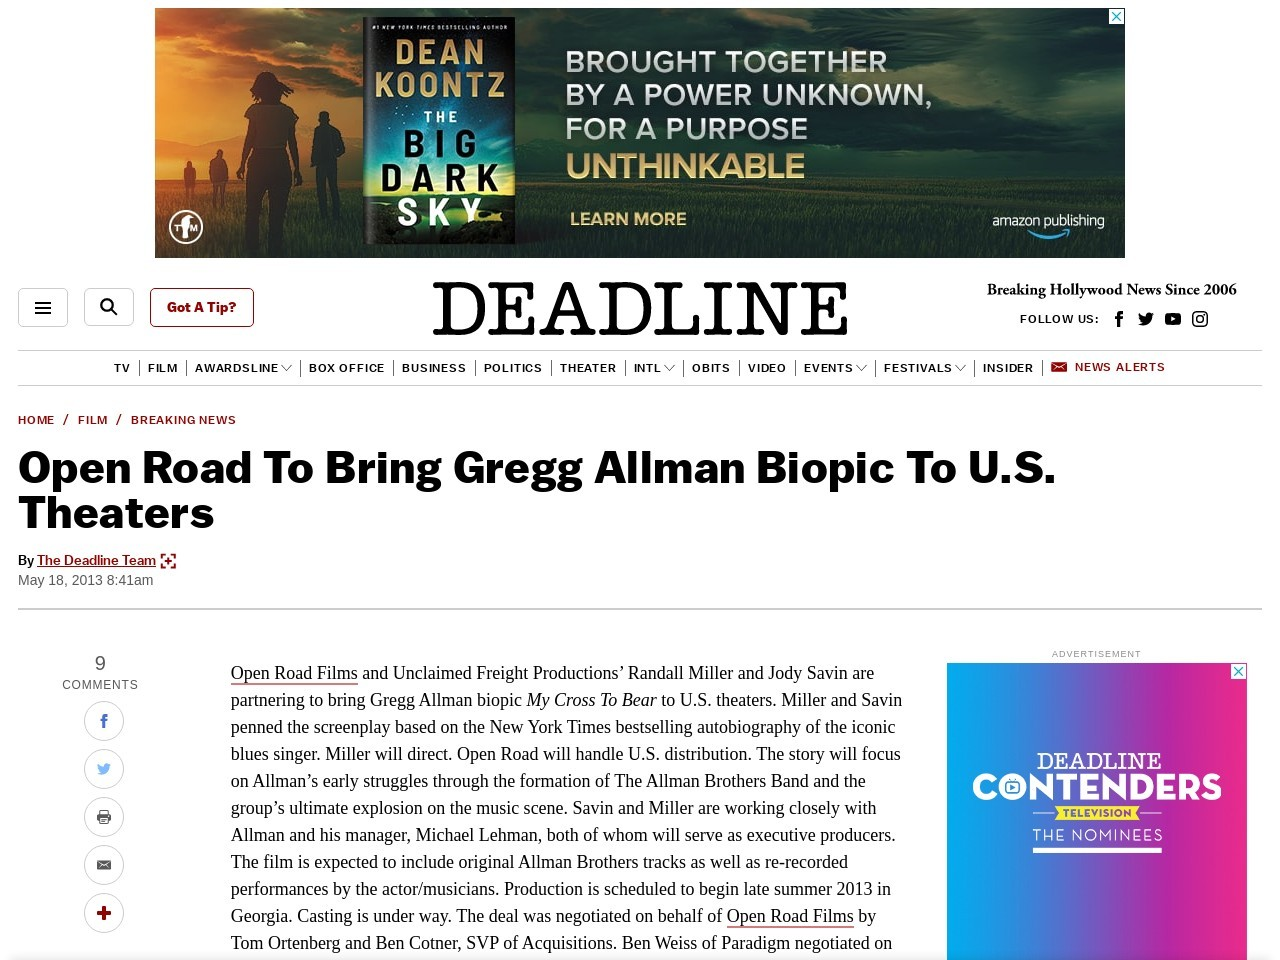 Open Road To Bring Gregg Allman Biopic To U.S. Theaters …